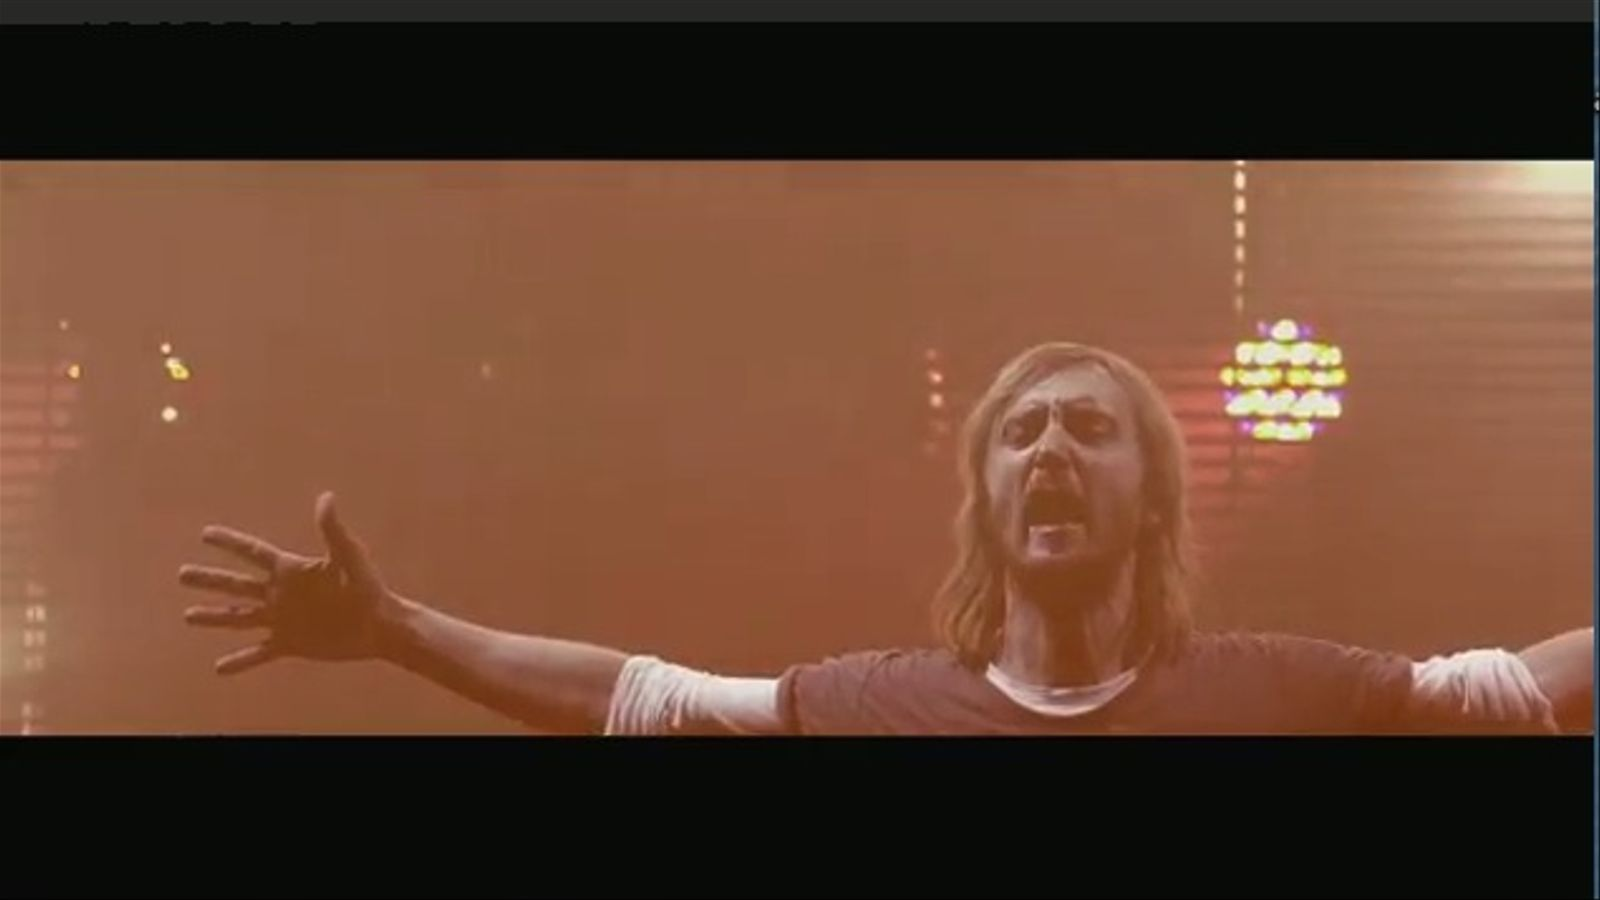 Tràiler de 'Nothing but the beat', el documental sobre David Guetta